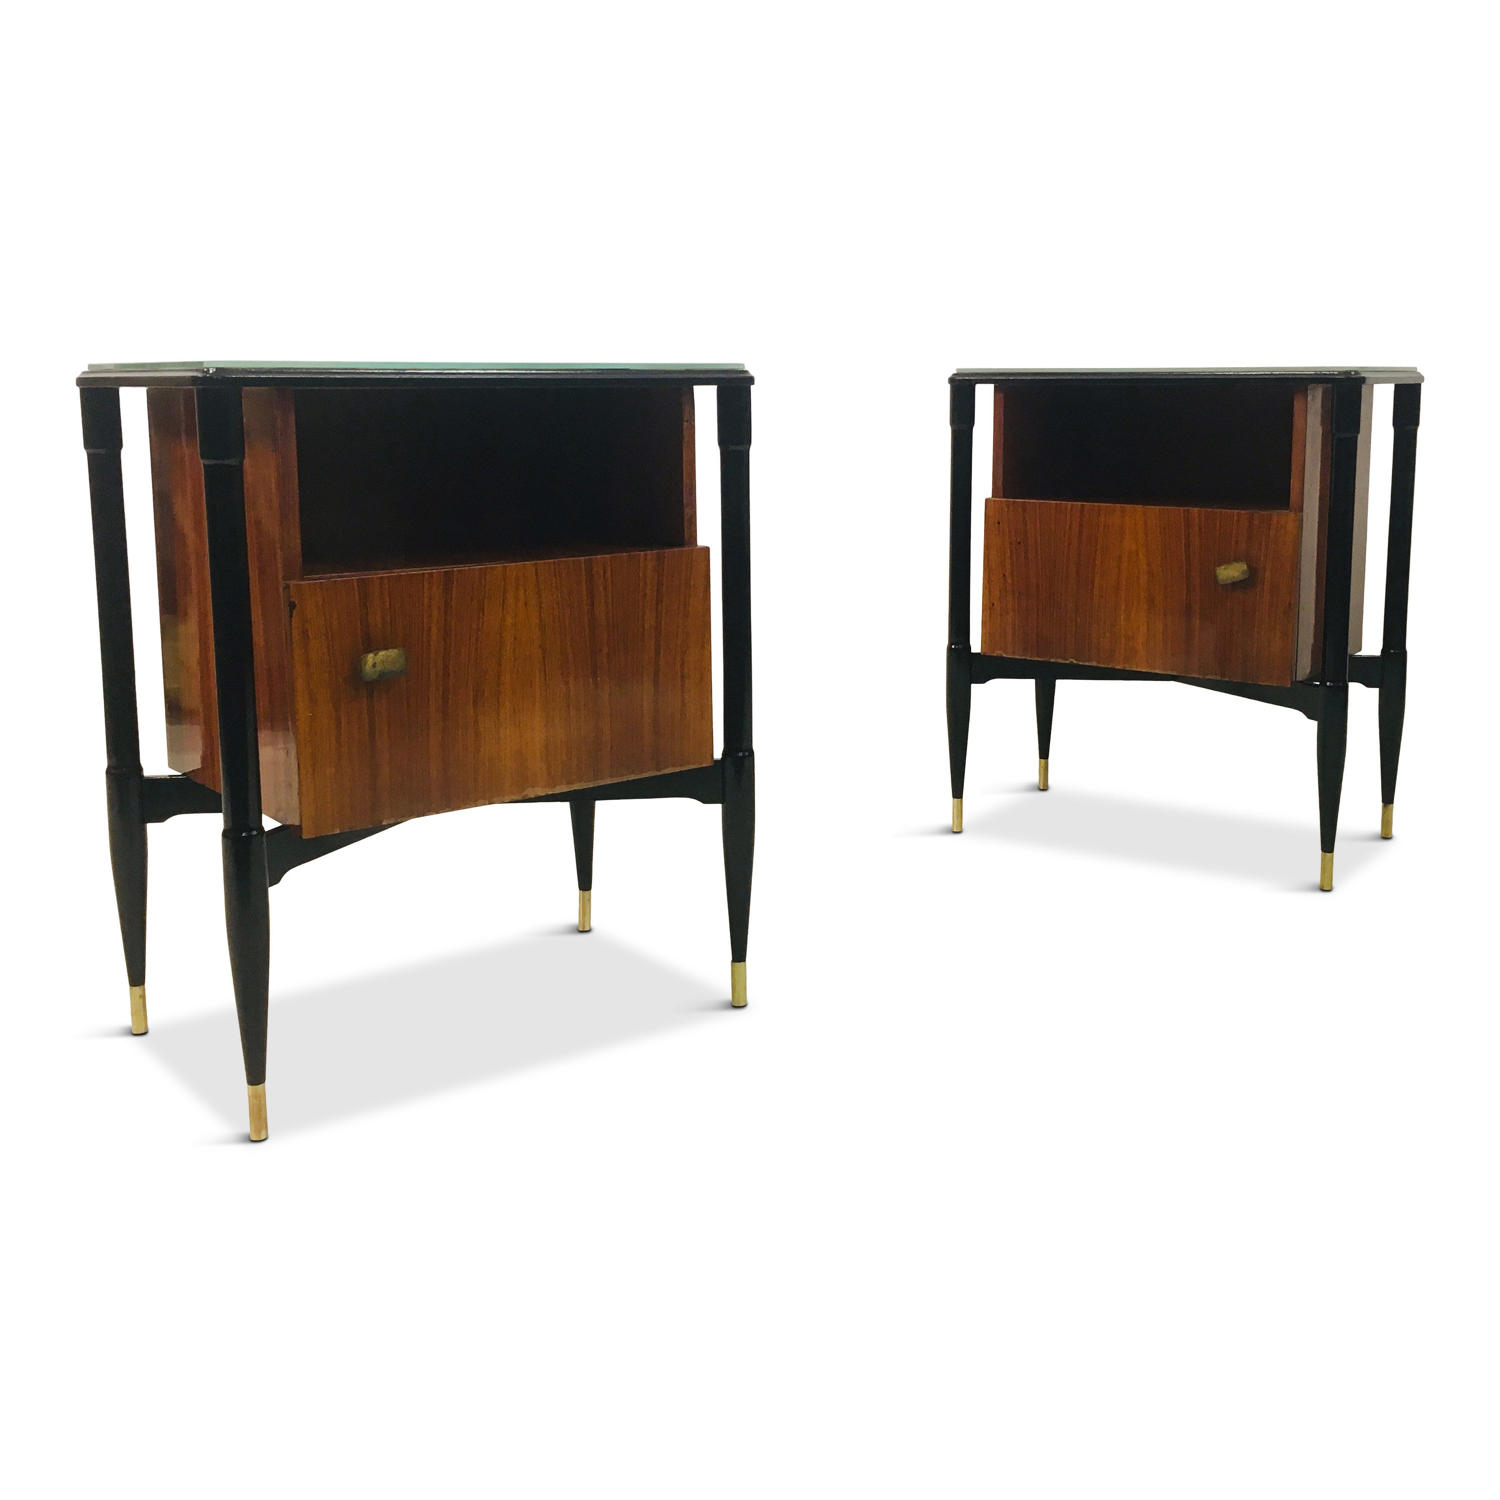 A pair of 1950s Italian mahogany and ebonised bedside tables